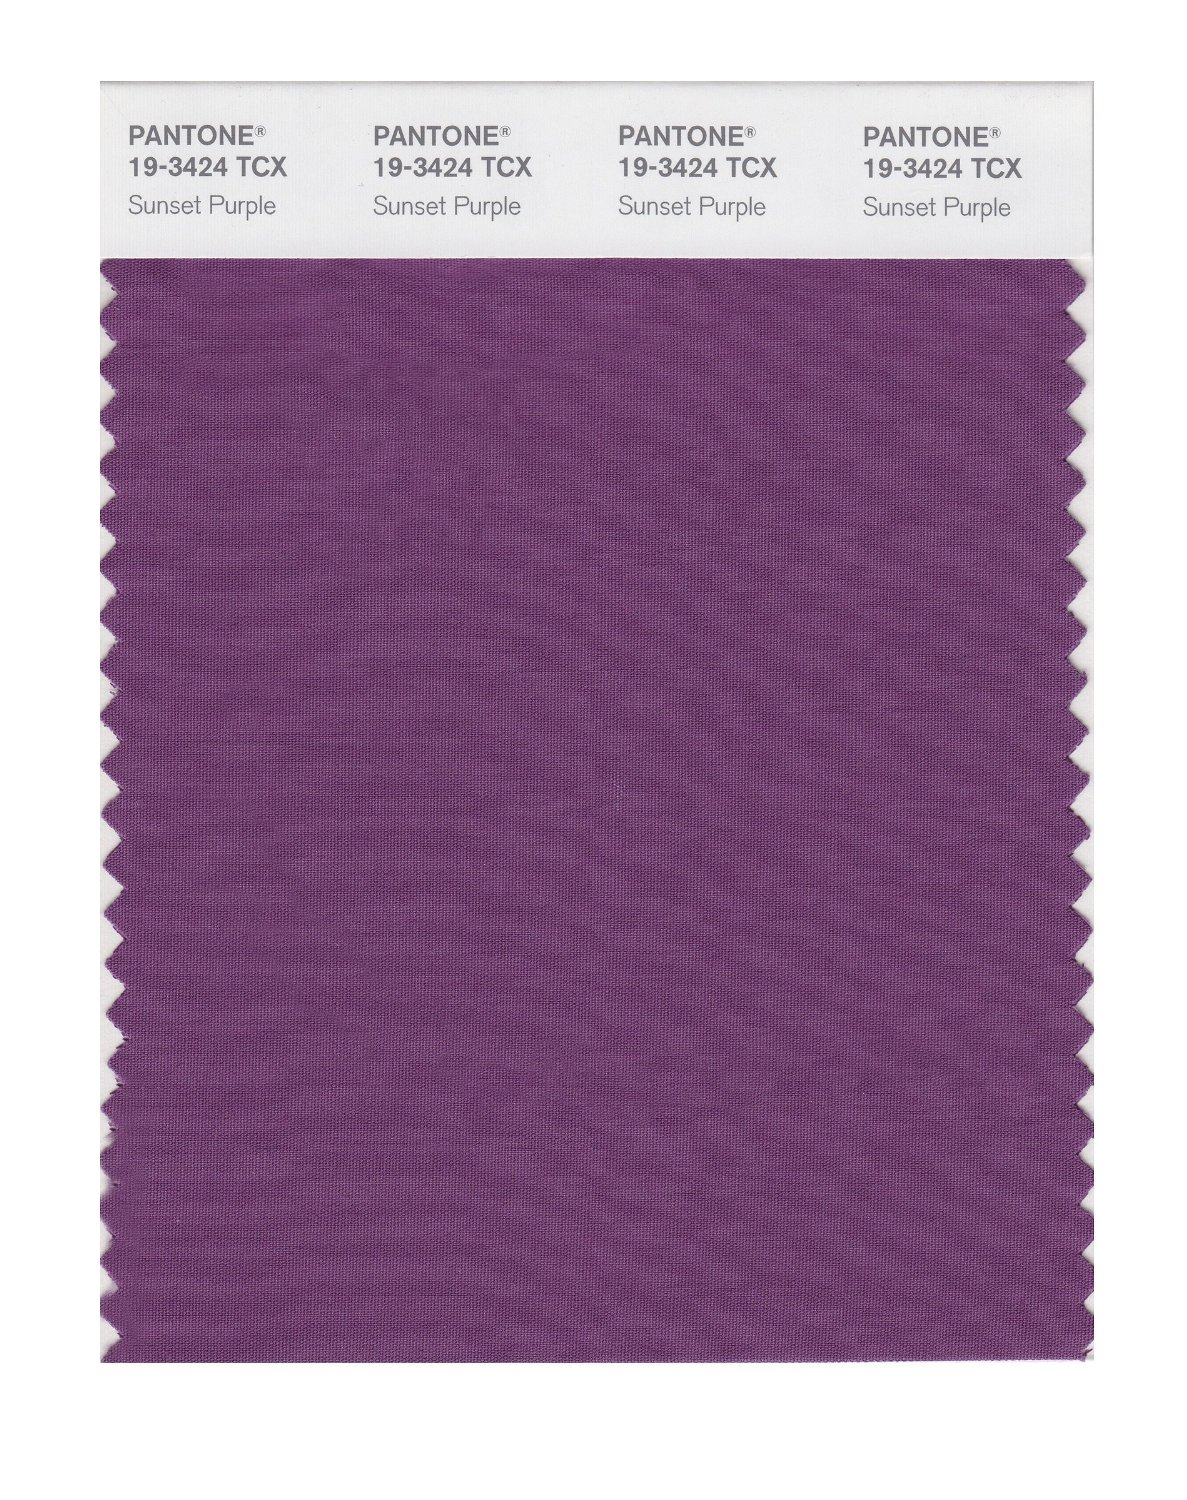 Pantone Smart Swatch 19-3424 Sunset Purple